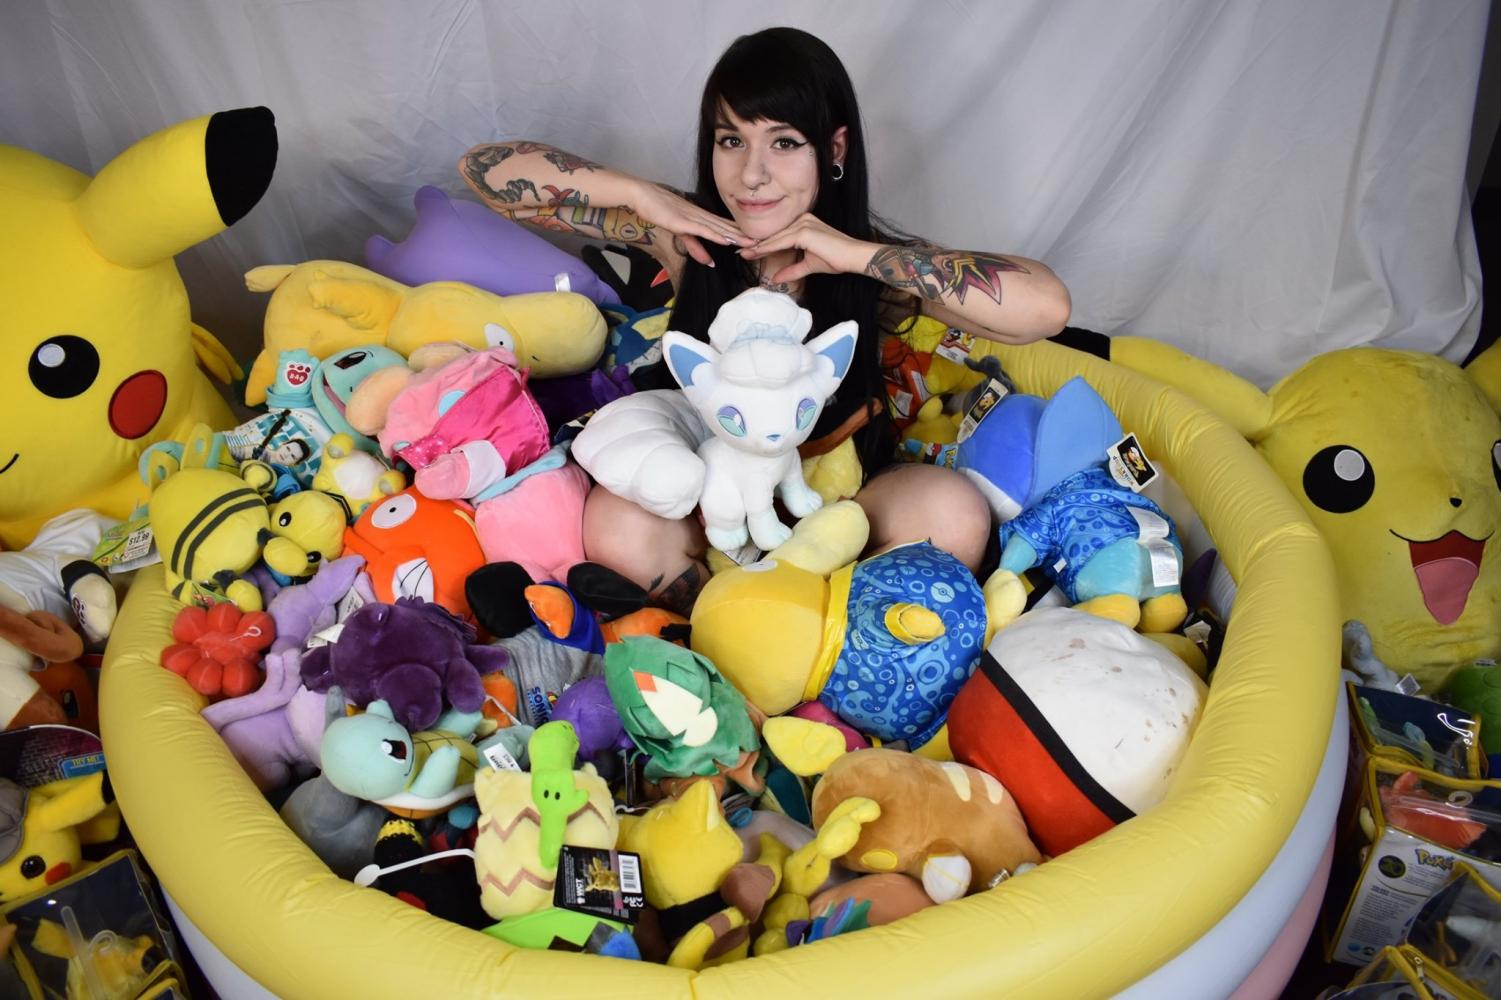 Marrissa Cloutier, aka PokePrincxss, showing off a small part of her massive Pokemon collection at her home in Colorado Springs, Colo., on Sept. 1, 2019.